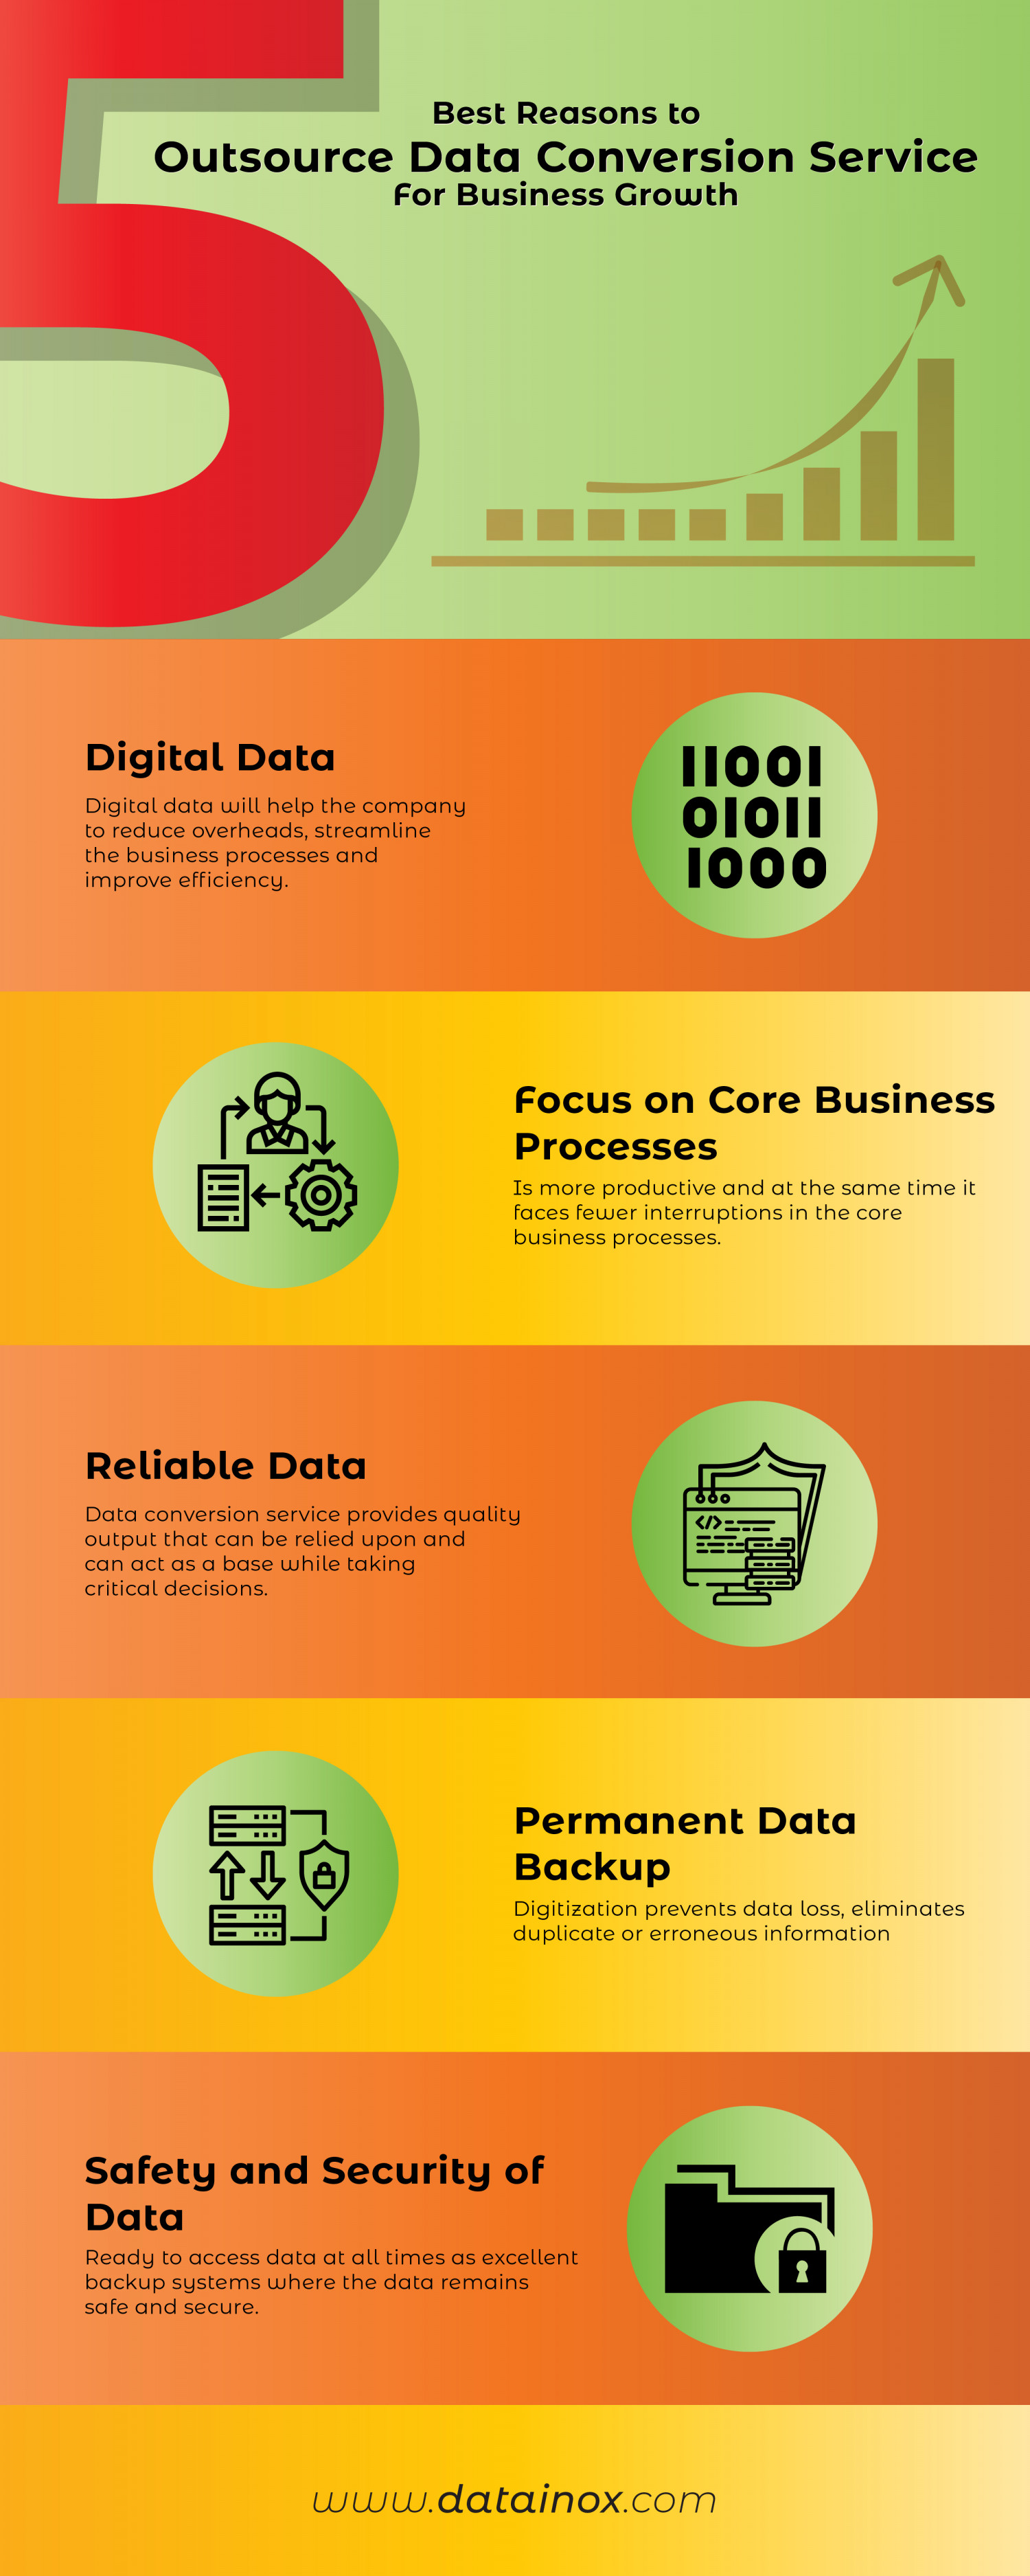 5 BEST REASONS TO OUTSOURCE DATA CONVERSION SERVICE FOR BUSINESS GROWTH Infographic